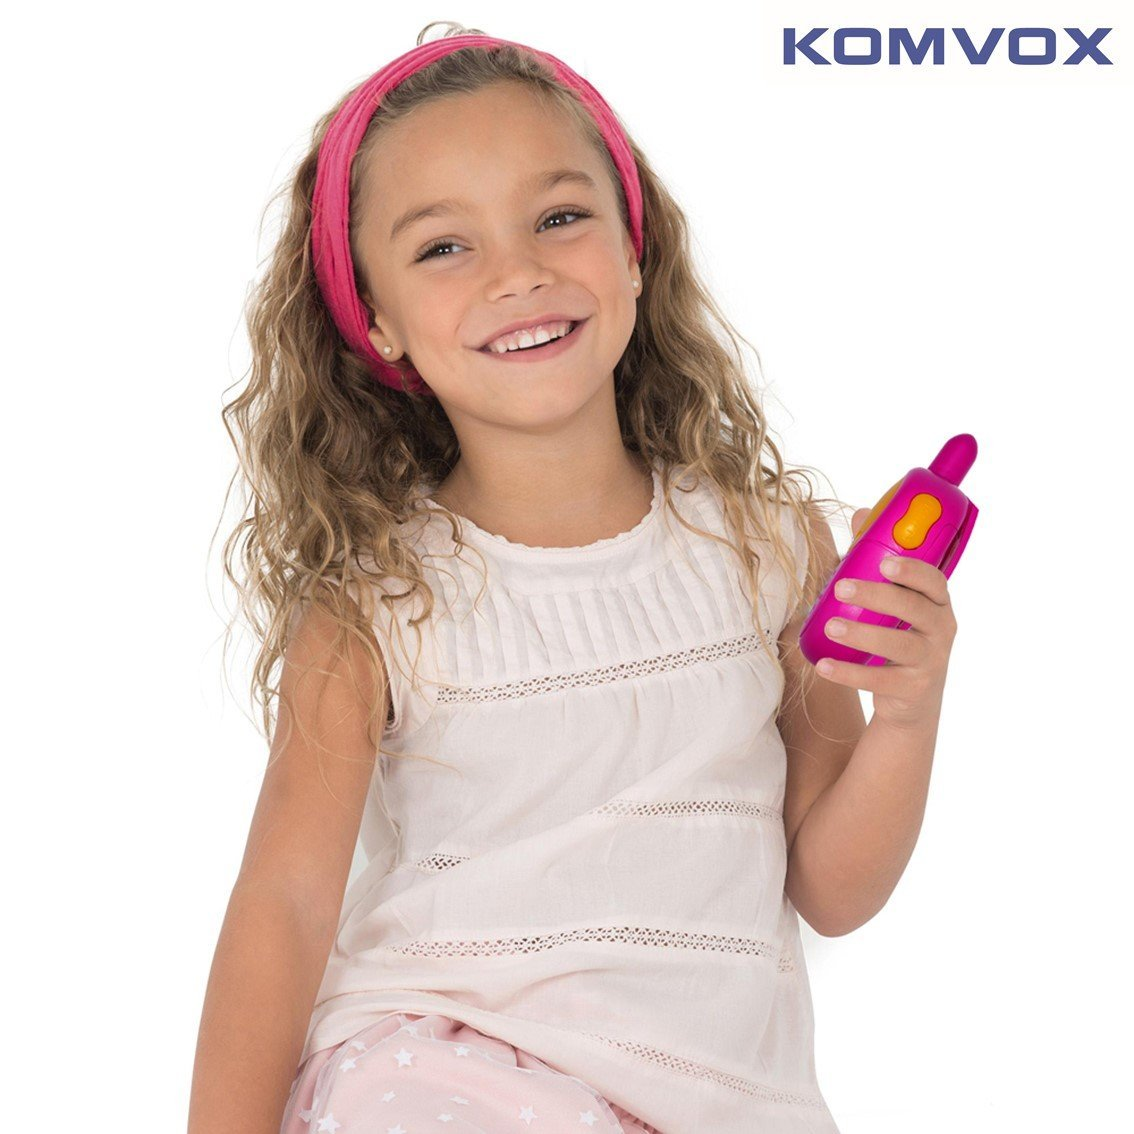 KOMVOX Walkie Talkies for Kids, Toys for Girls Age 3 4 5 6, Kids Birthday Gifts for 3 4 5 Year Old Girls, Top Toys for Girls Pink Gifts by KOMVOX (Image #6)